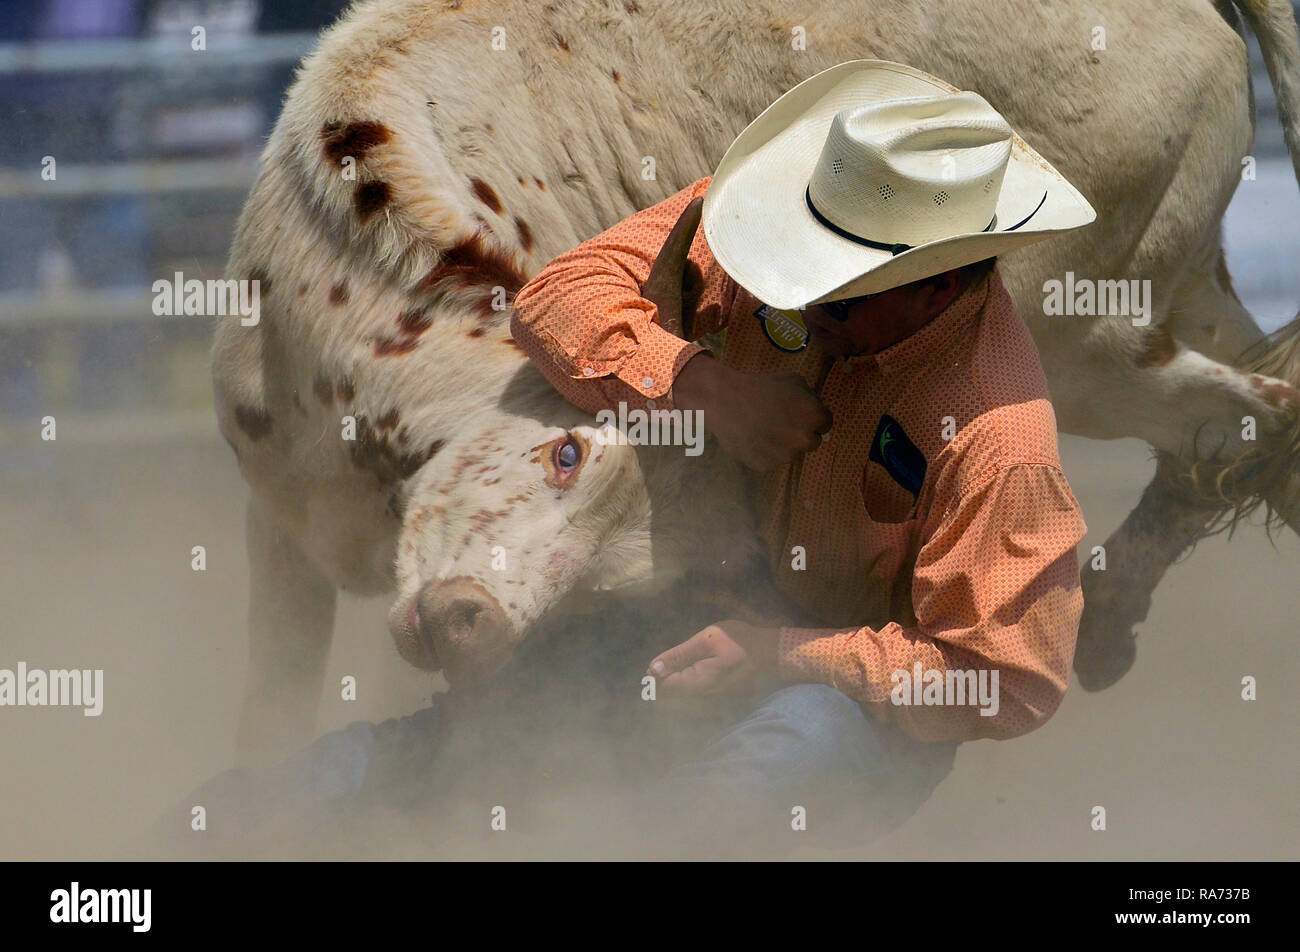 A rodeo competitor grabing a bull by the horns at a bull doggin event at a rodeo in Alberta Canada. Stock Photo